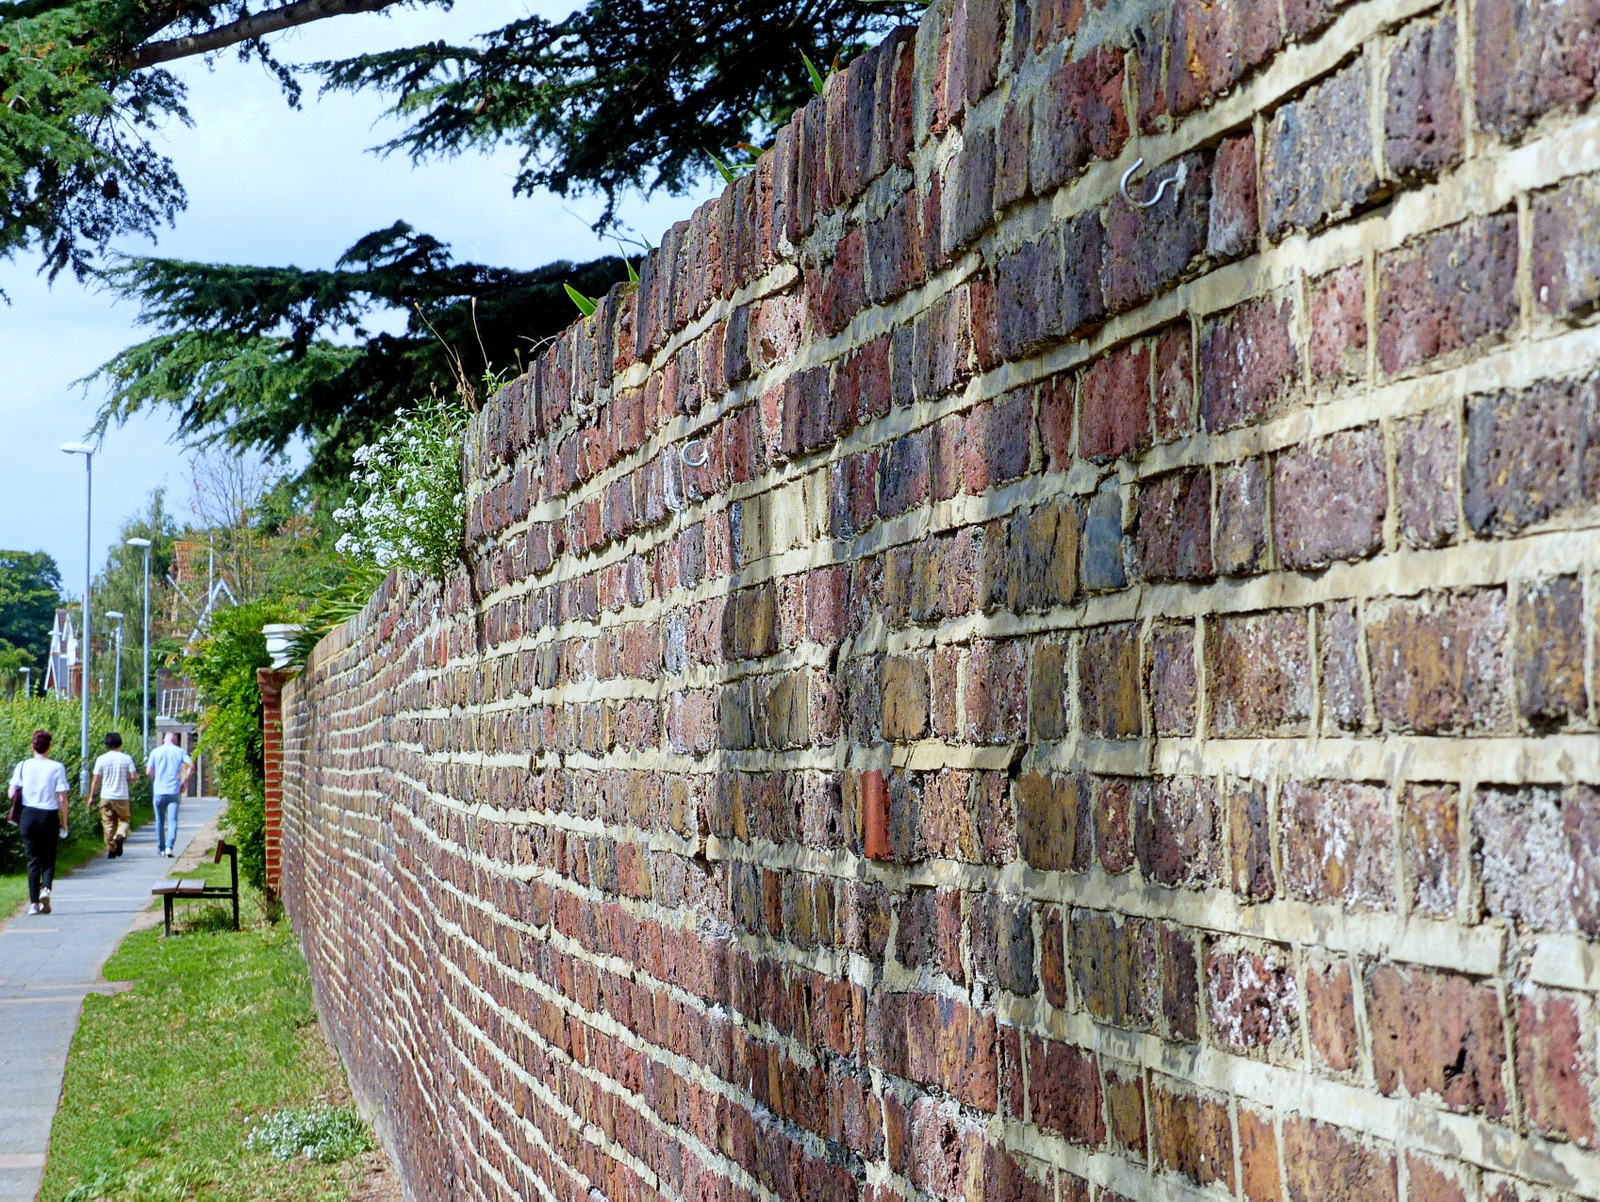 The_old_brick_wall_LHR_-001.jpg